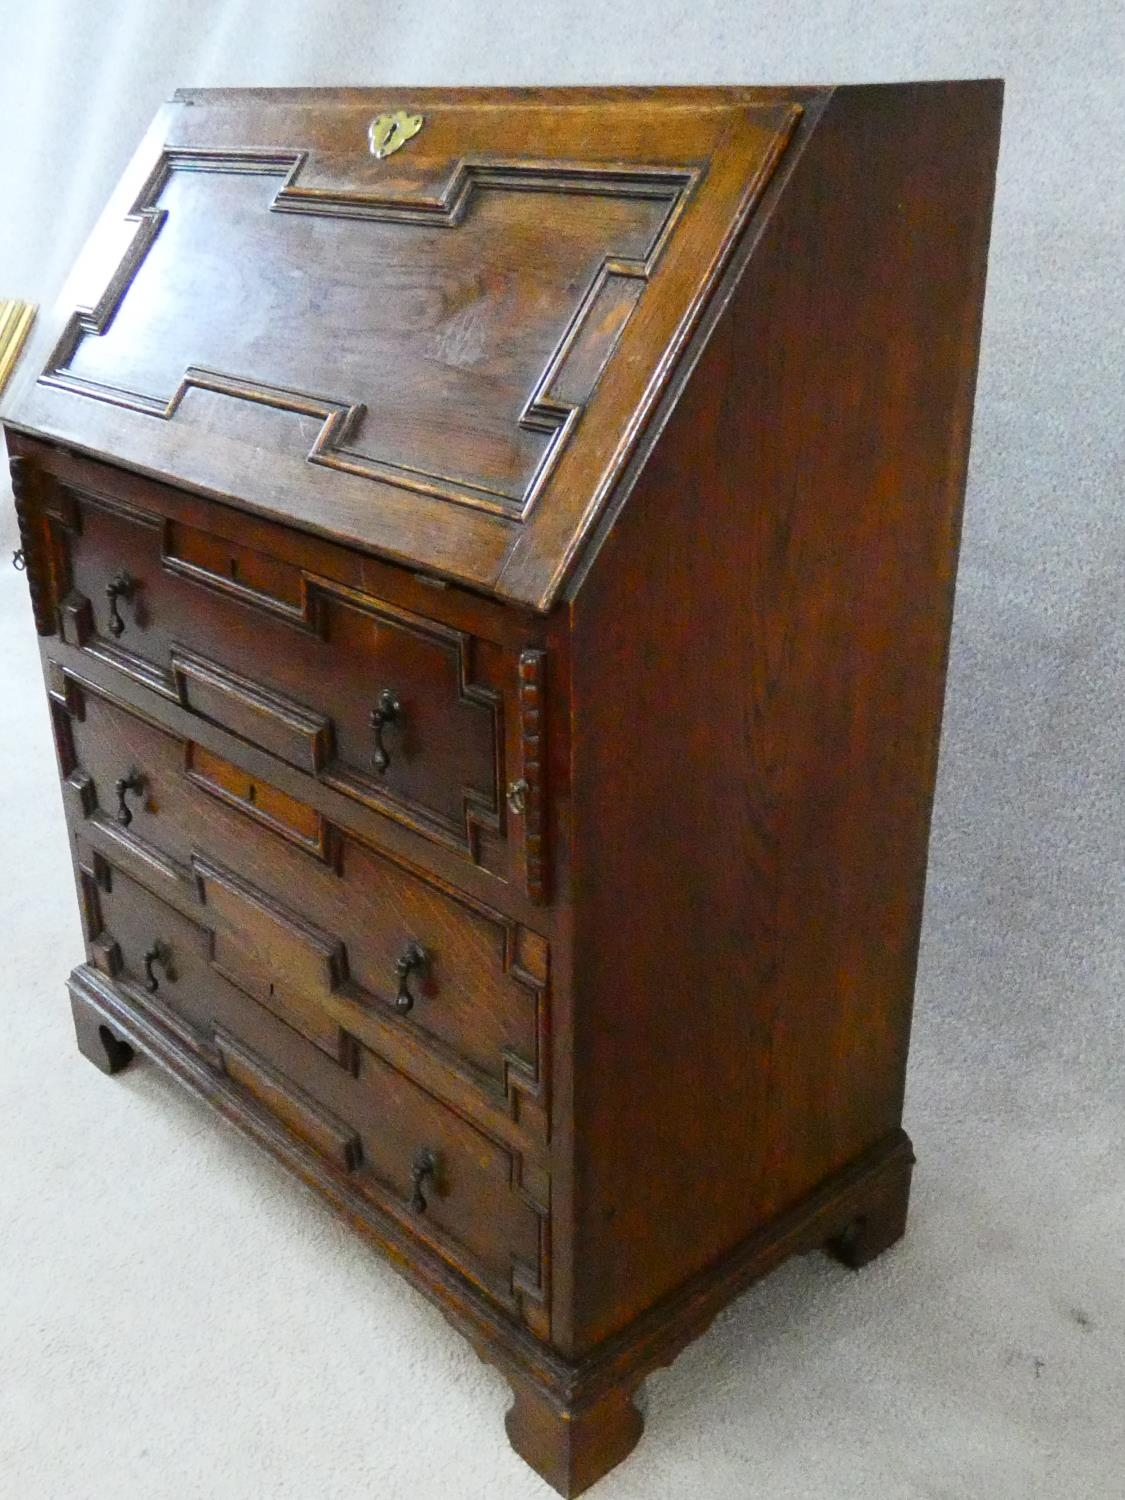 A mid century Jacobean style oak bureau with lozenge inset panels and fall front revealing fitted - Image 13 of 26